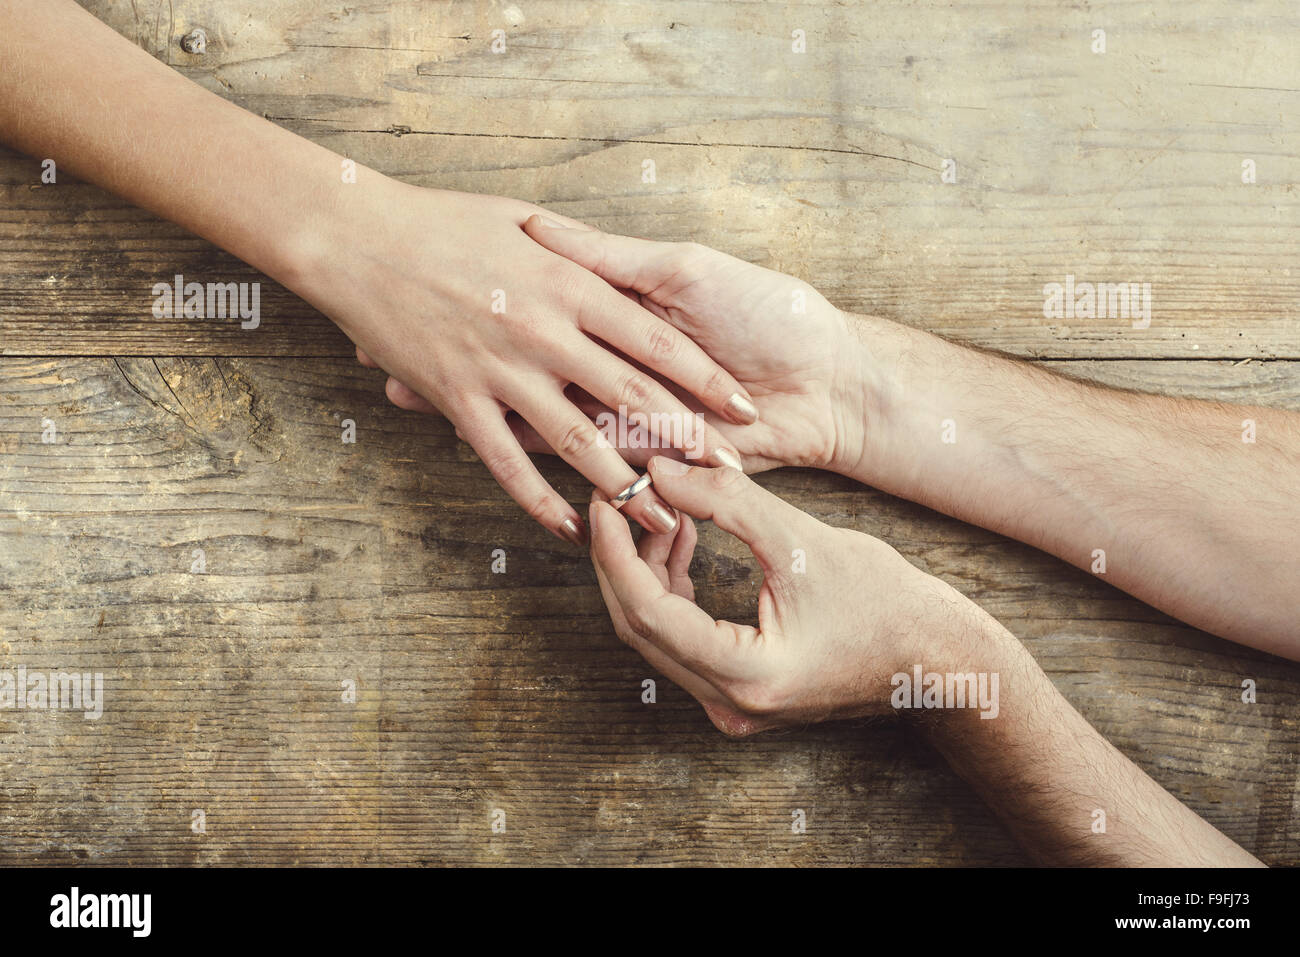 Man putting on engagement ring tenderly to his woman. Studio shot on a wooden background, view from above. - Stock Image